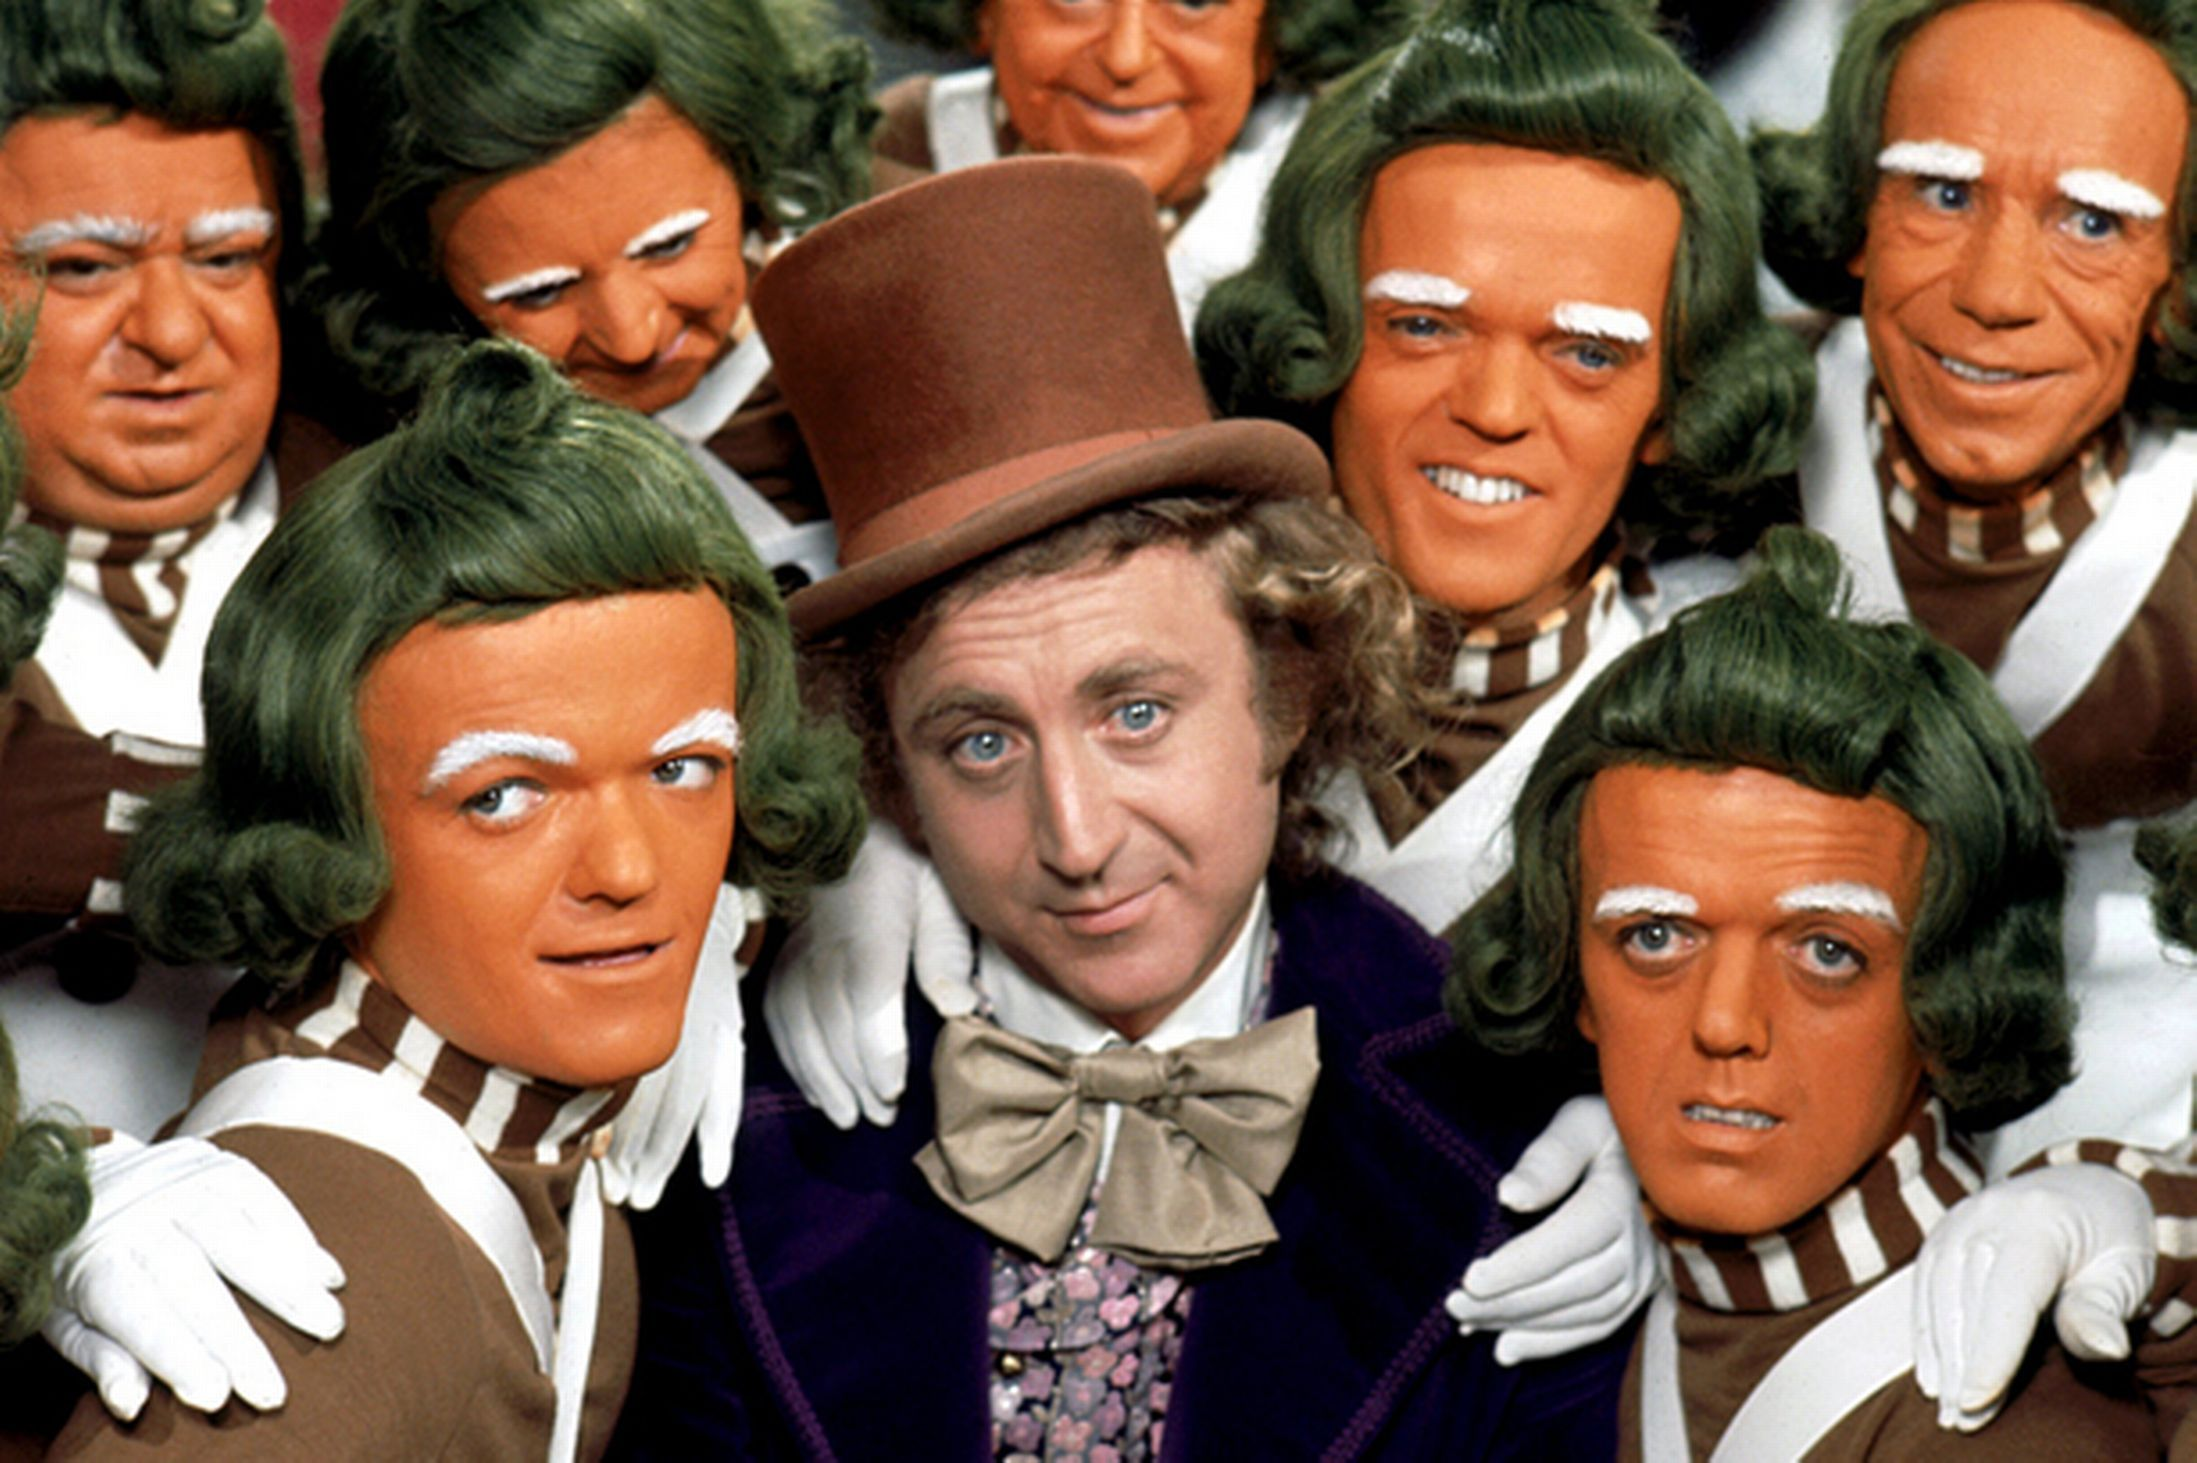 best images about charlie and the chocolate factory ronald 17 best images about charlie and the chocolate factory ronald dahl on the golden chewing gum and musicals